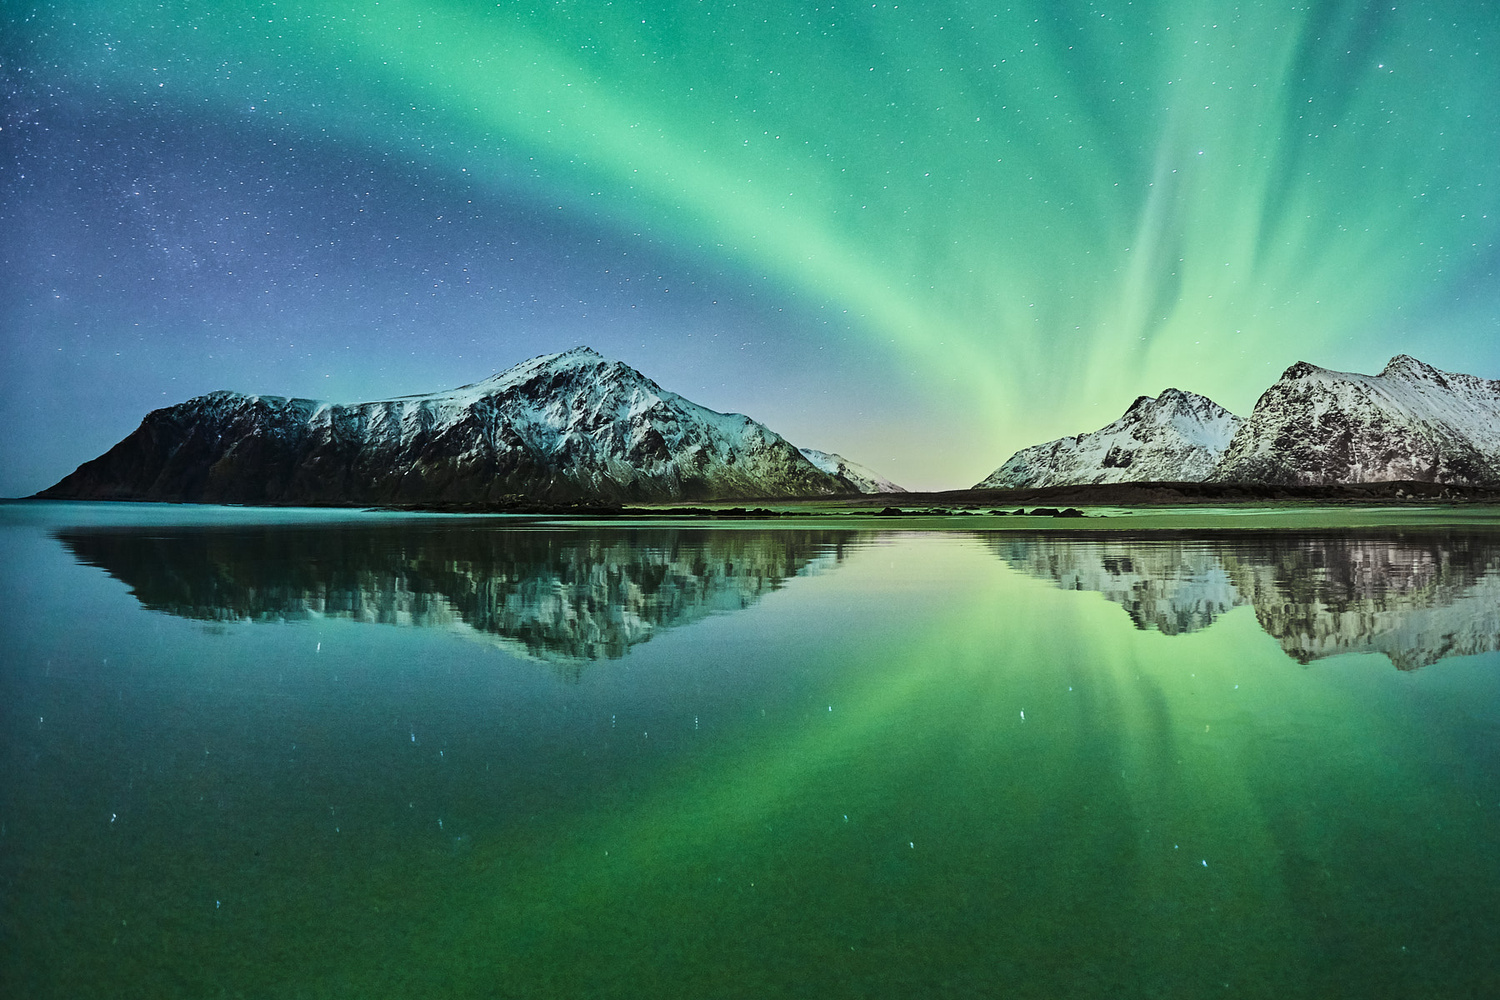 Northern Reflection by Johny Goerend